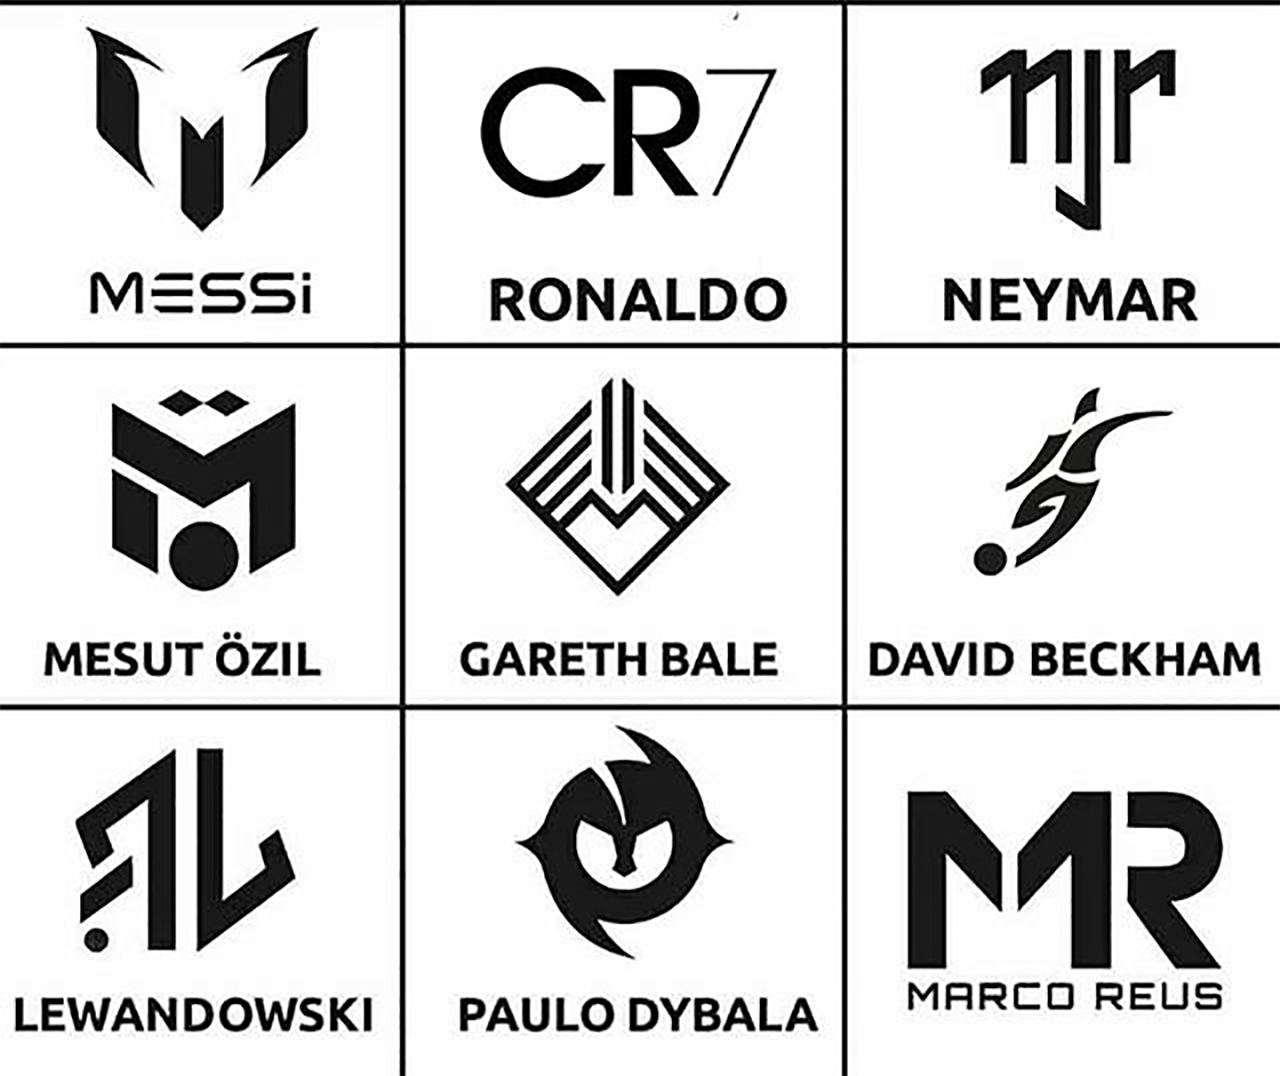 Superstar Soccer Players Have Logos Too